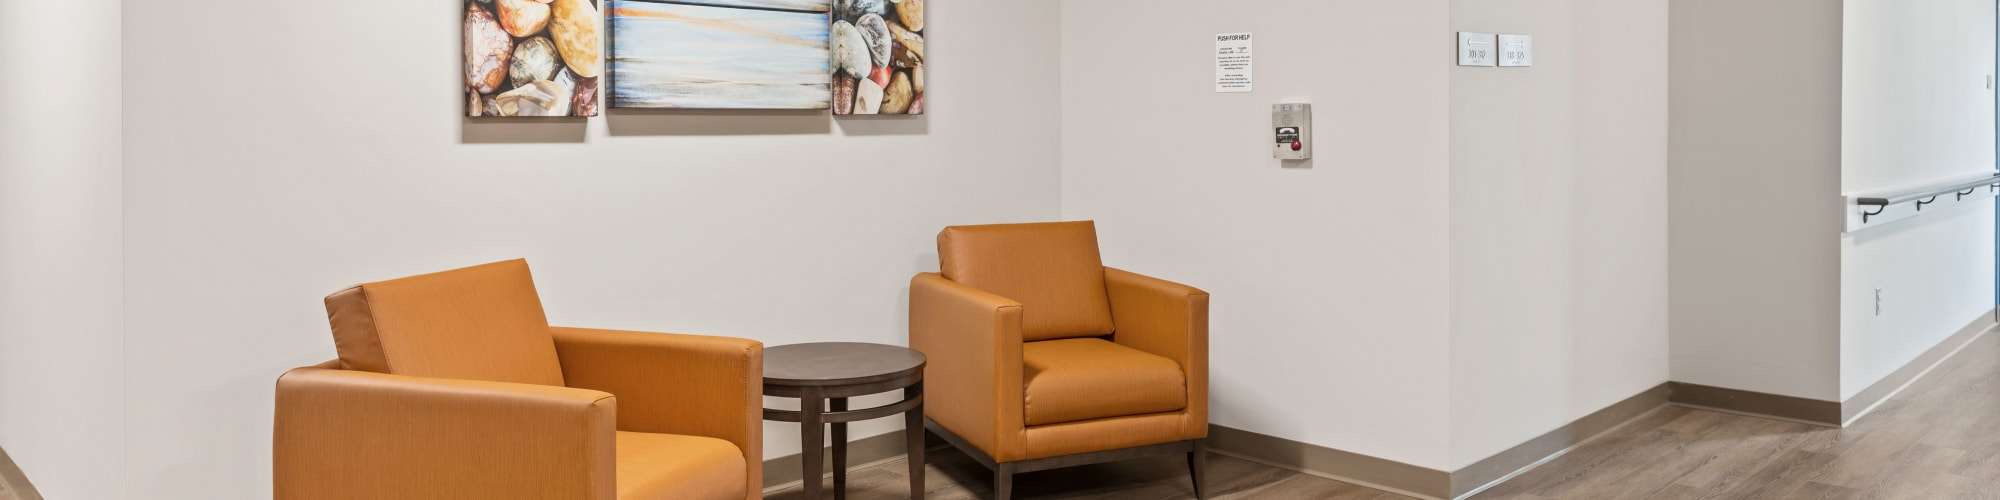 Reviews of The Apartments at Sharpe Square in Frederick, Maryland